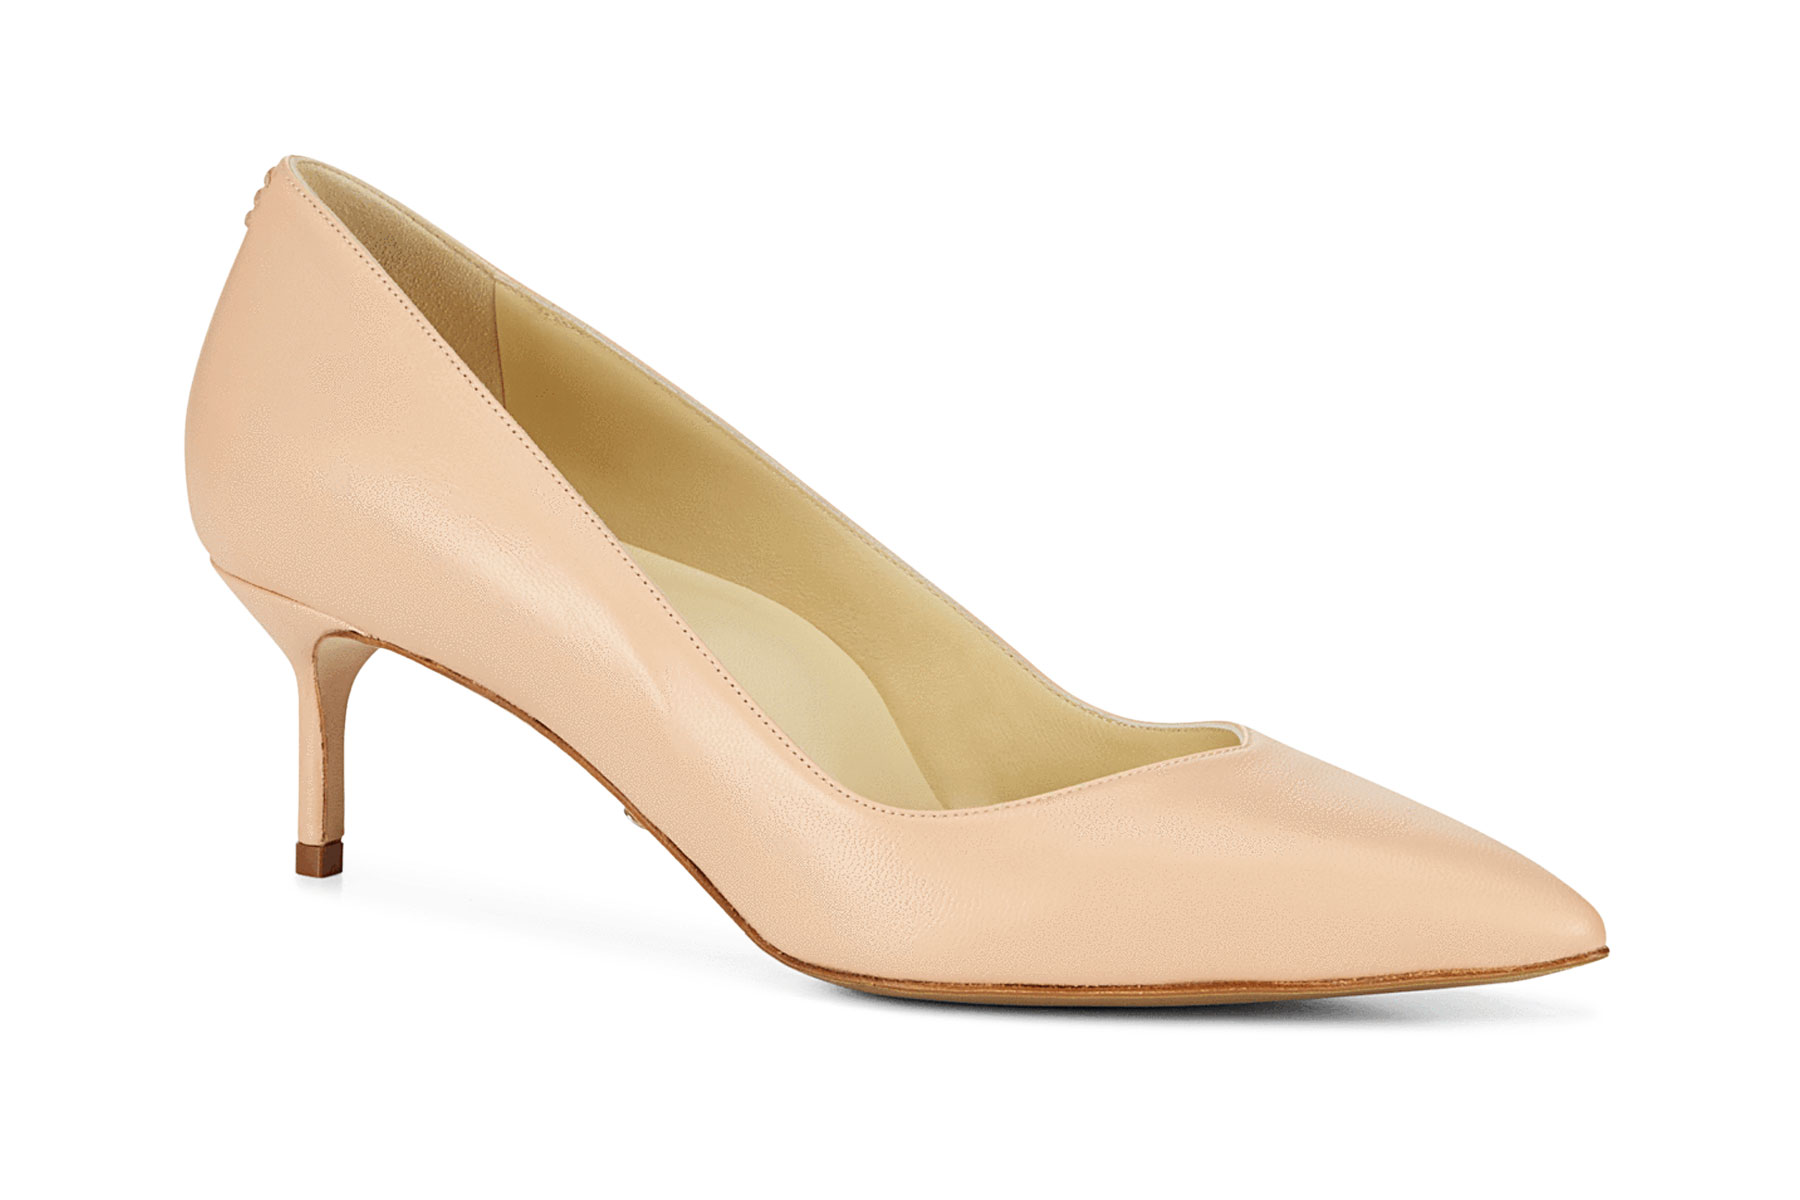 Blush heeled shoe